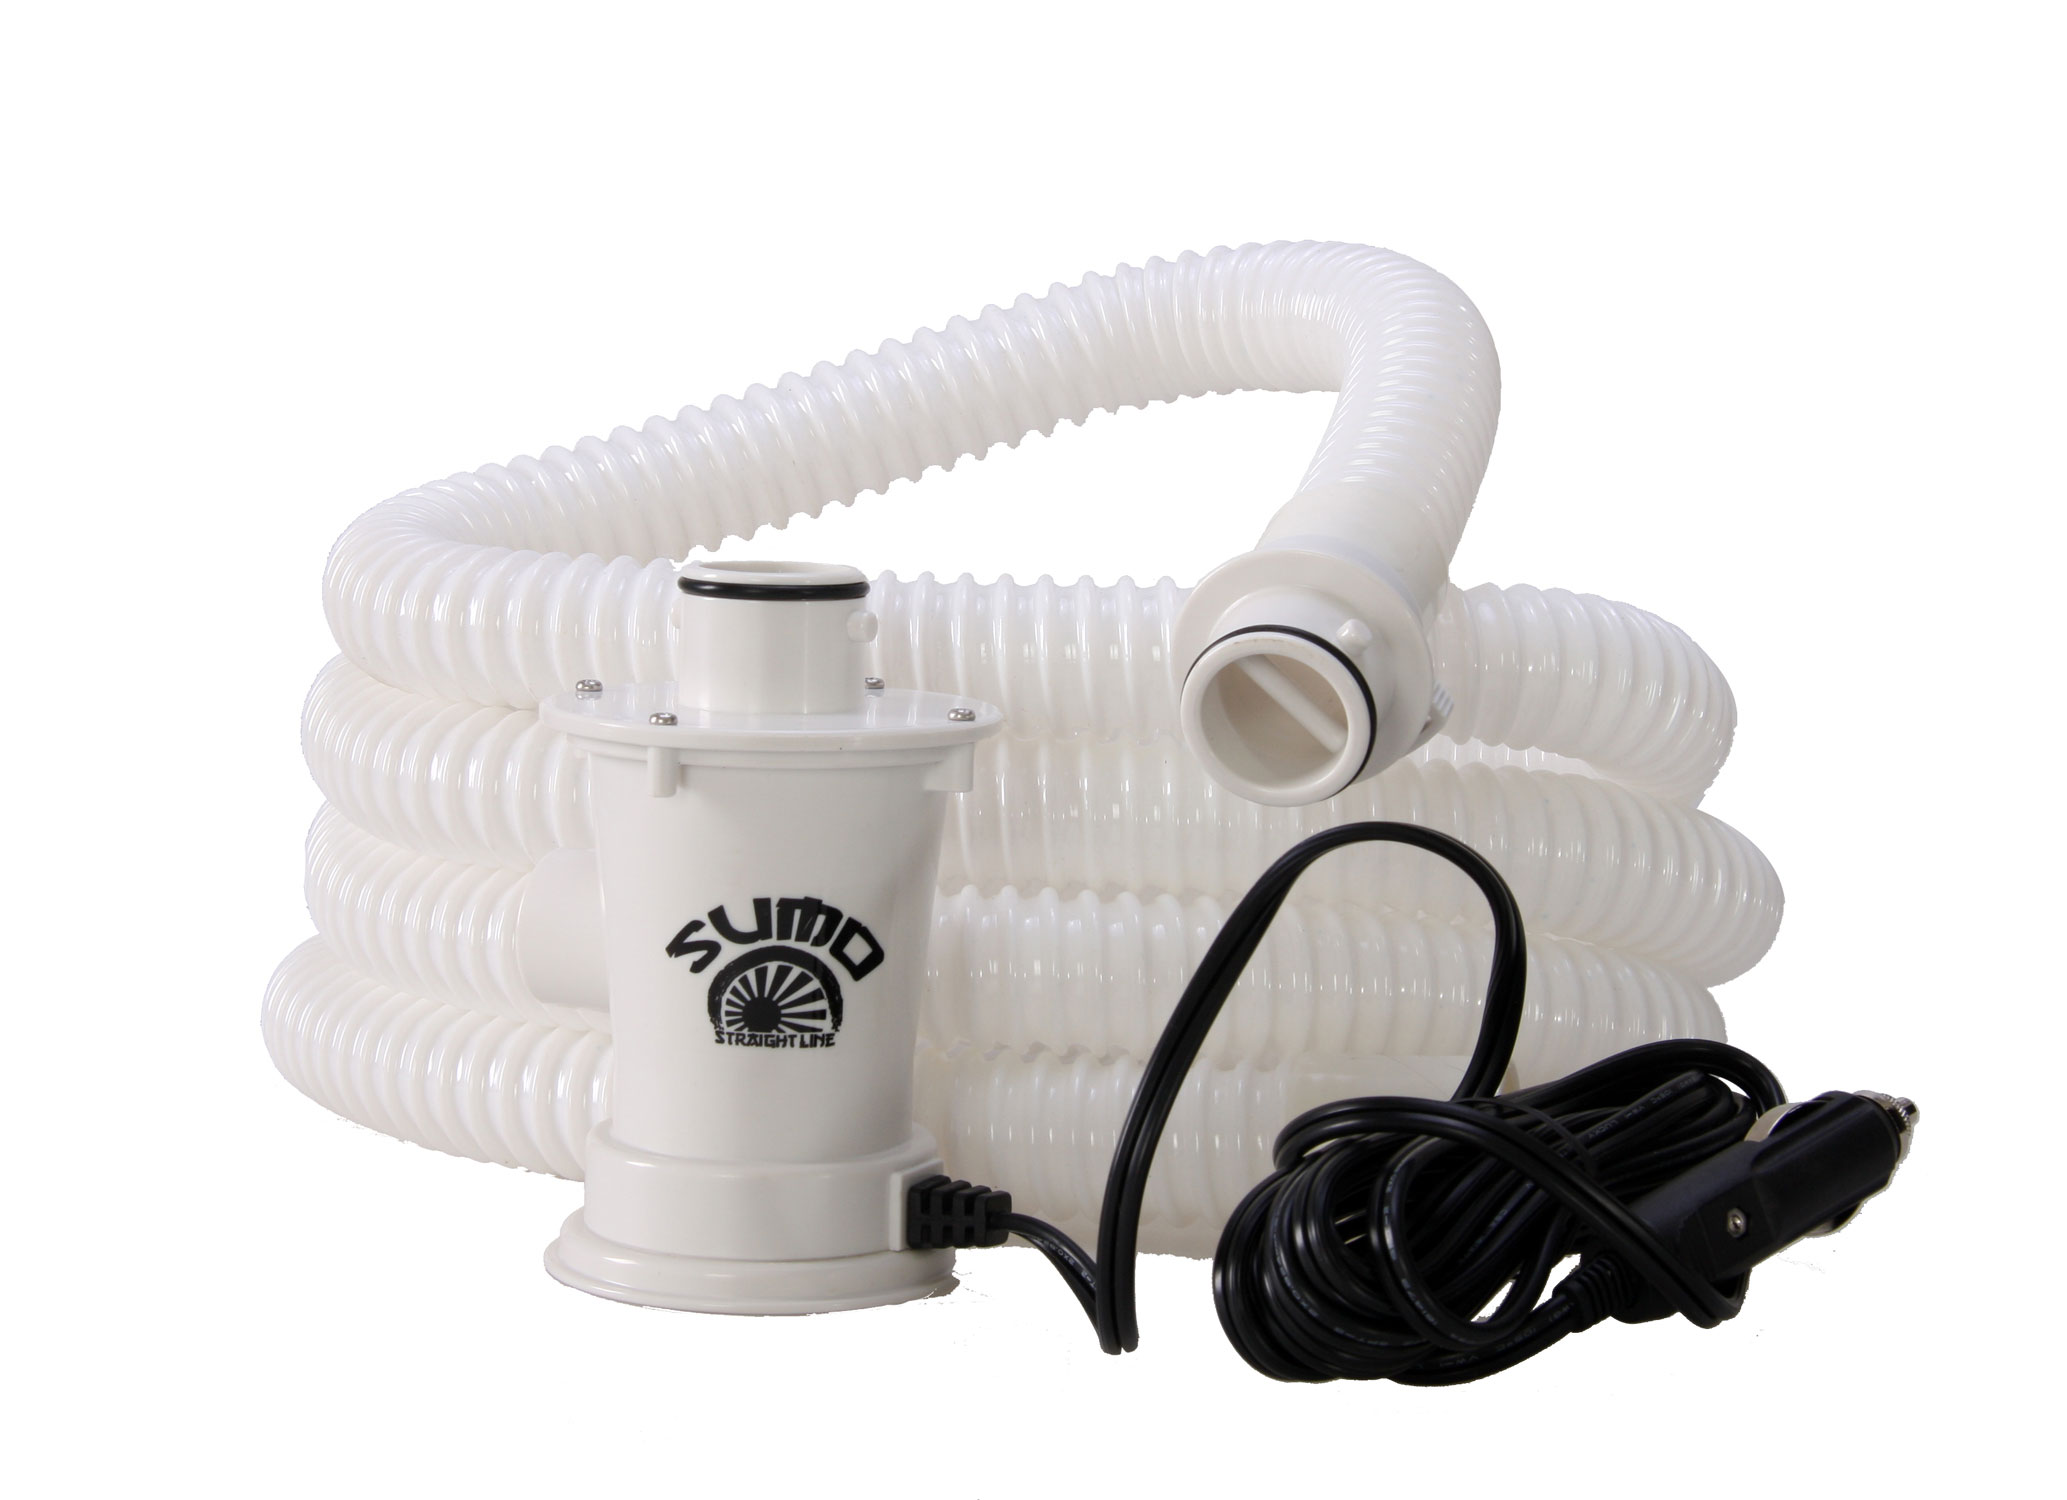 Key Features of The Straight Line Sumo Pump: Fills 100 Pounds in 55 Seconds 9 Foot, PVC Armor Hose will Not Kink or Crush 12 Foot, Fused 12V Power Cord for Easy Access Anywhere - $89.99